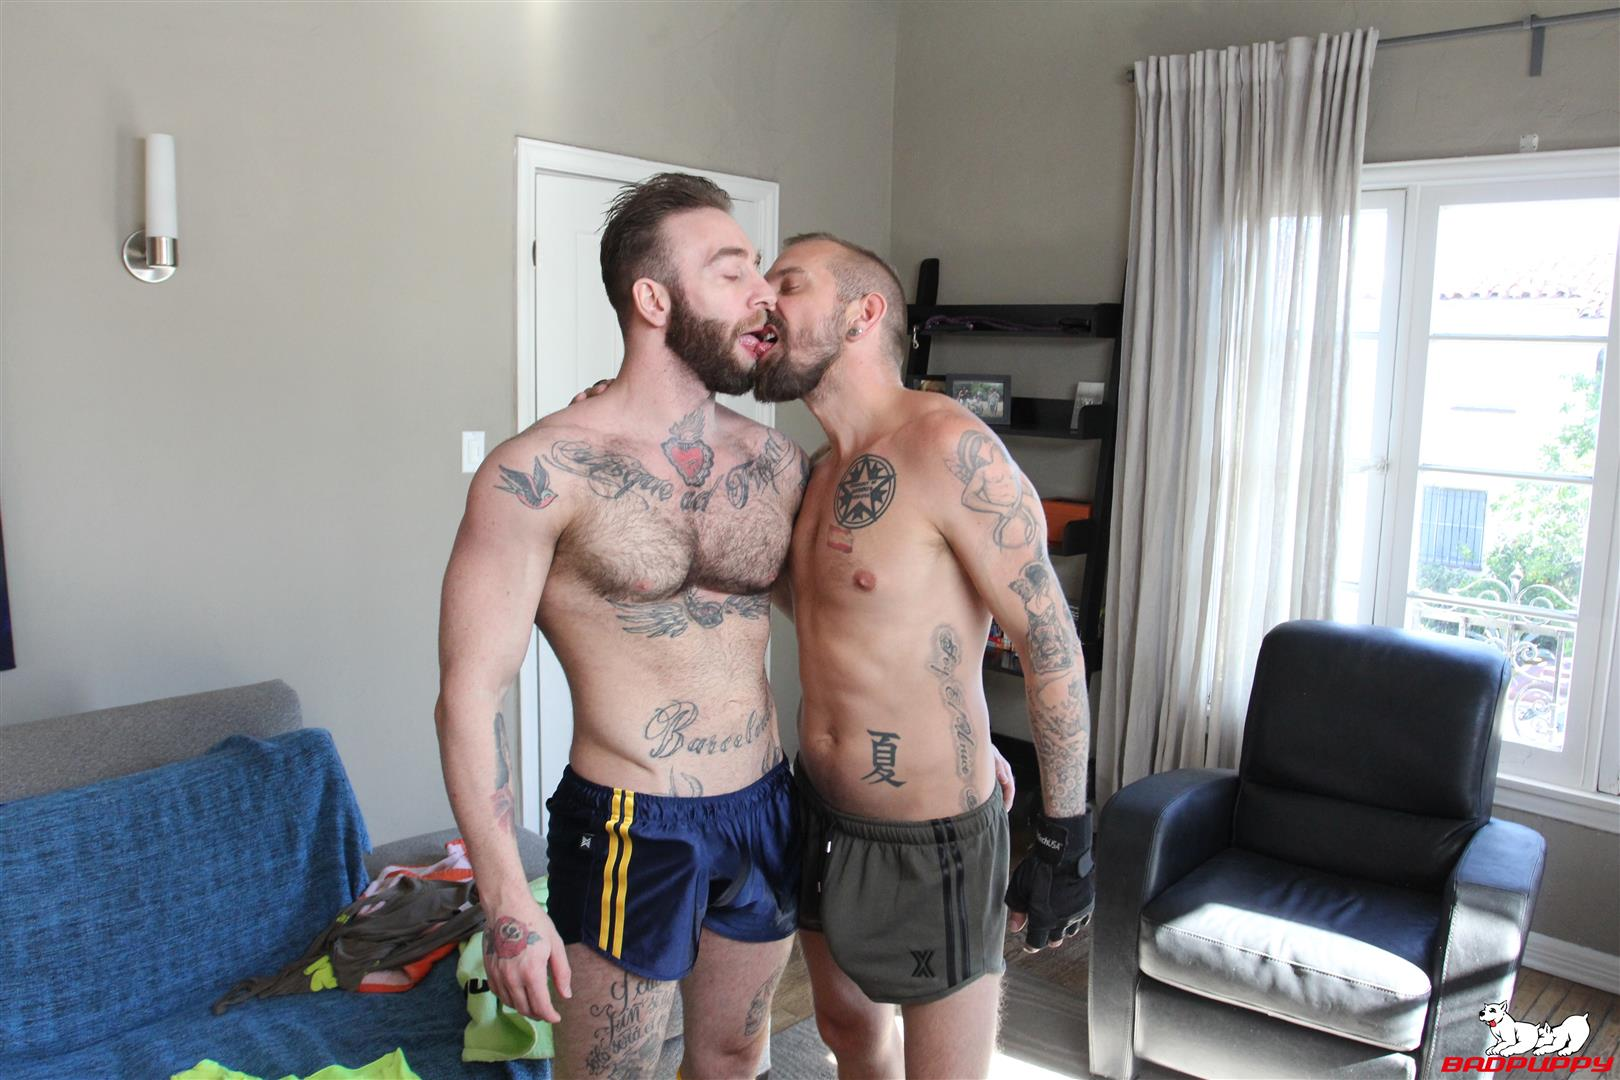 Badpuppy-Manual-Scalco-and-Stephen-Raw-Big-Uncut-Cocks-Fucking-Bareback-02 Getting Bareback Fucked By A Big Thick Uncut Cock